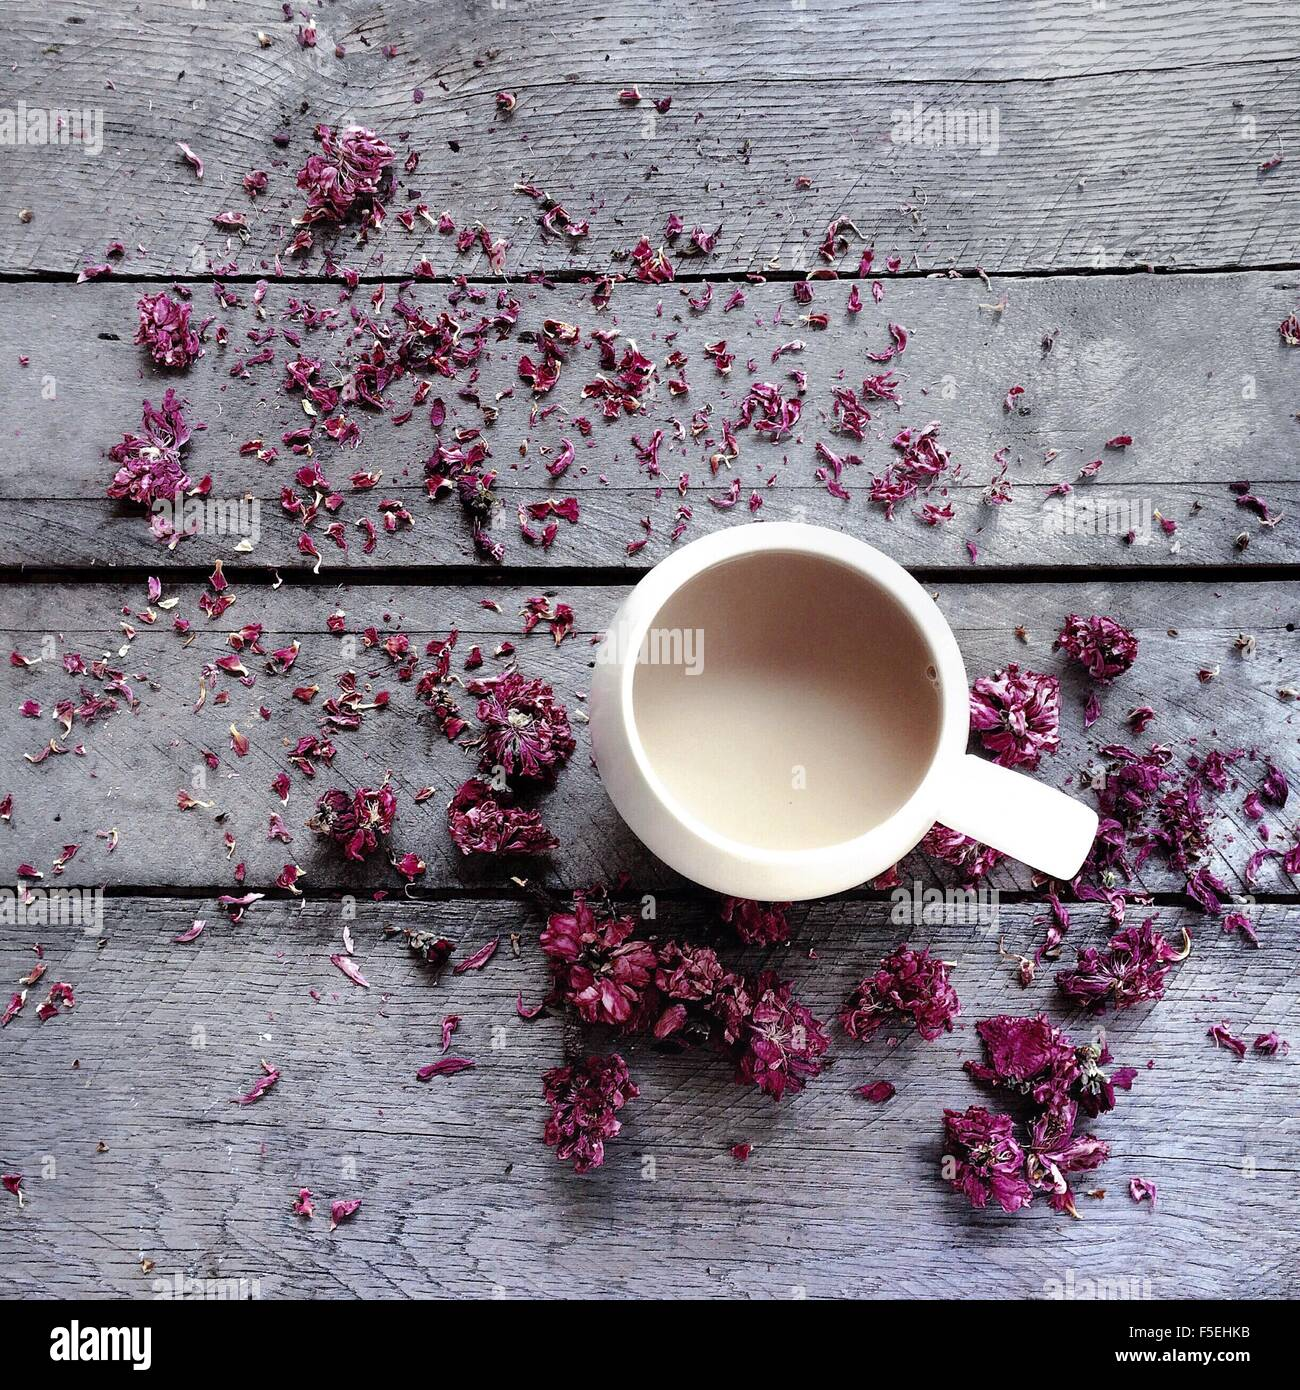 Mug of tea surrounded by dried flower blossoms - Stock Image